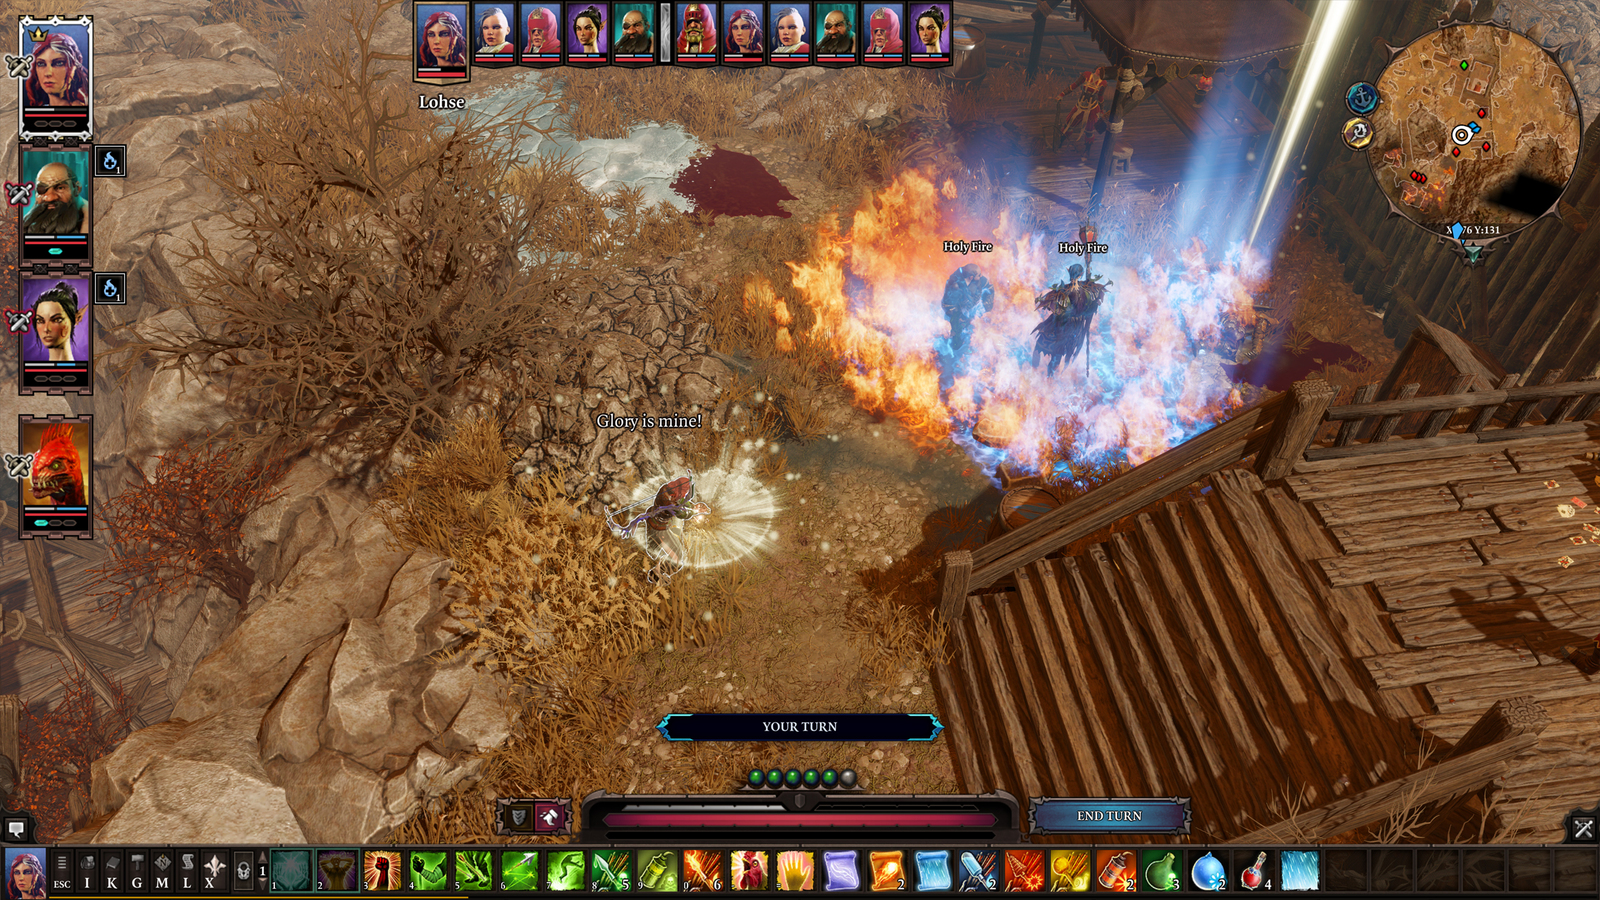 Divinity: Original Sin 2 Definitive Edition for Xbox One image